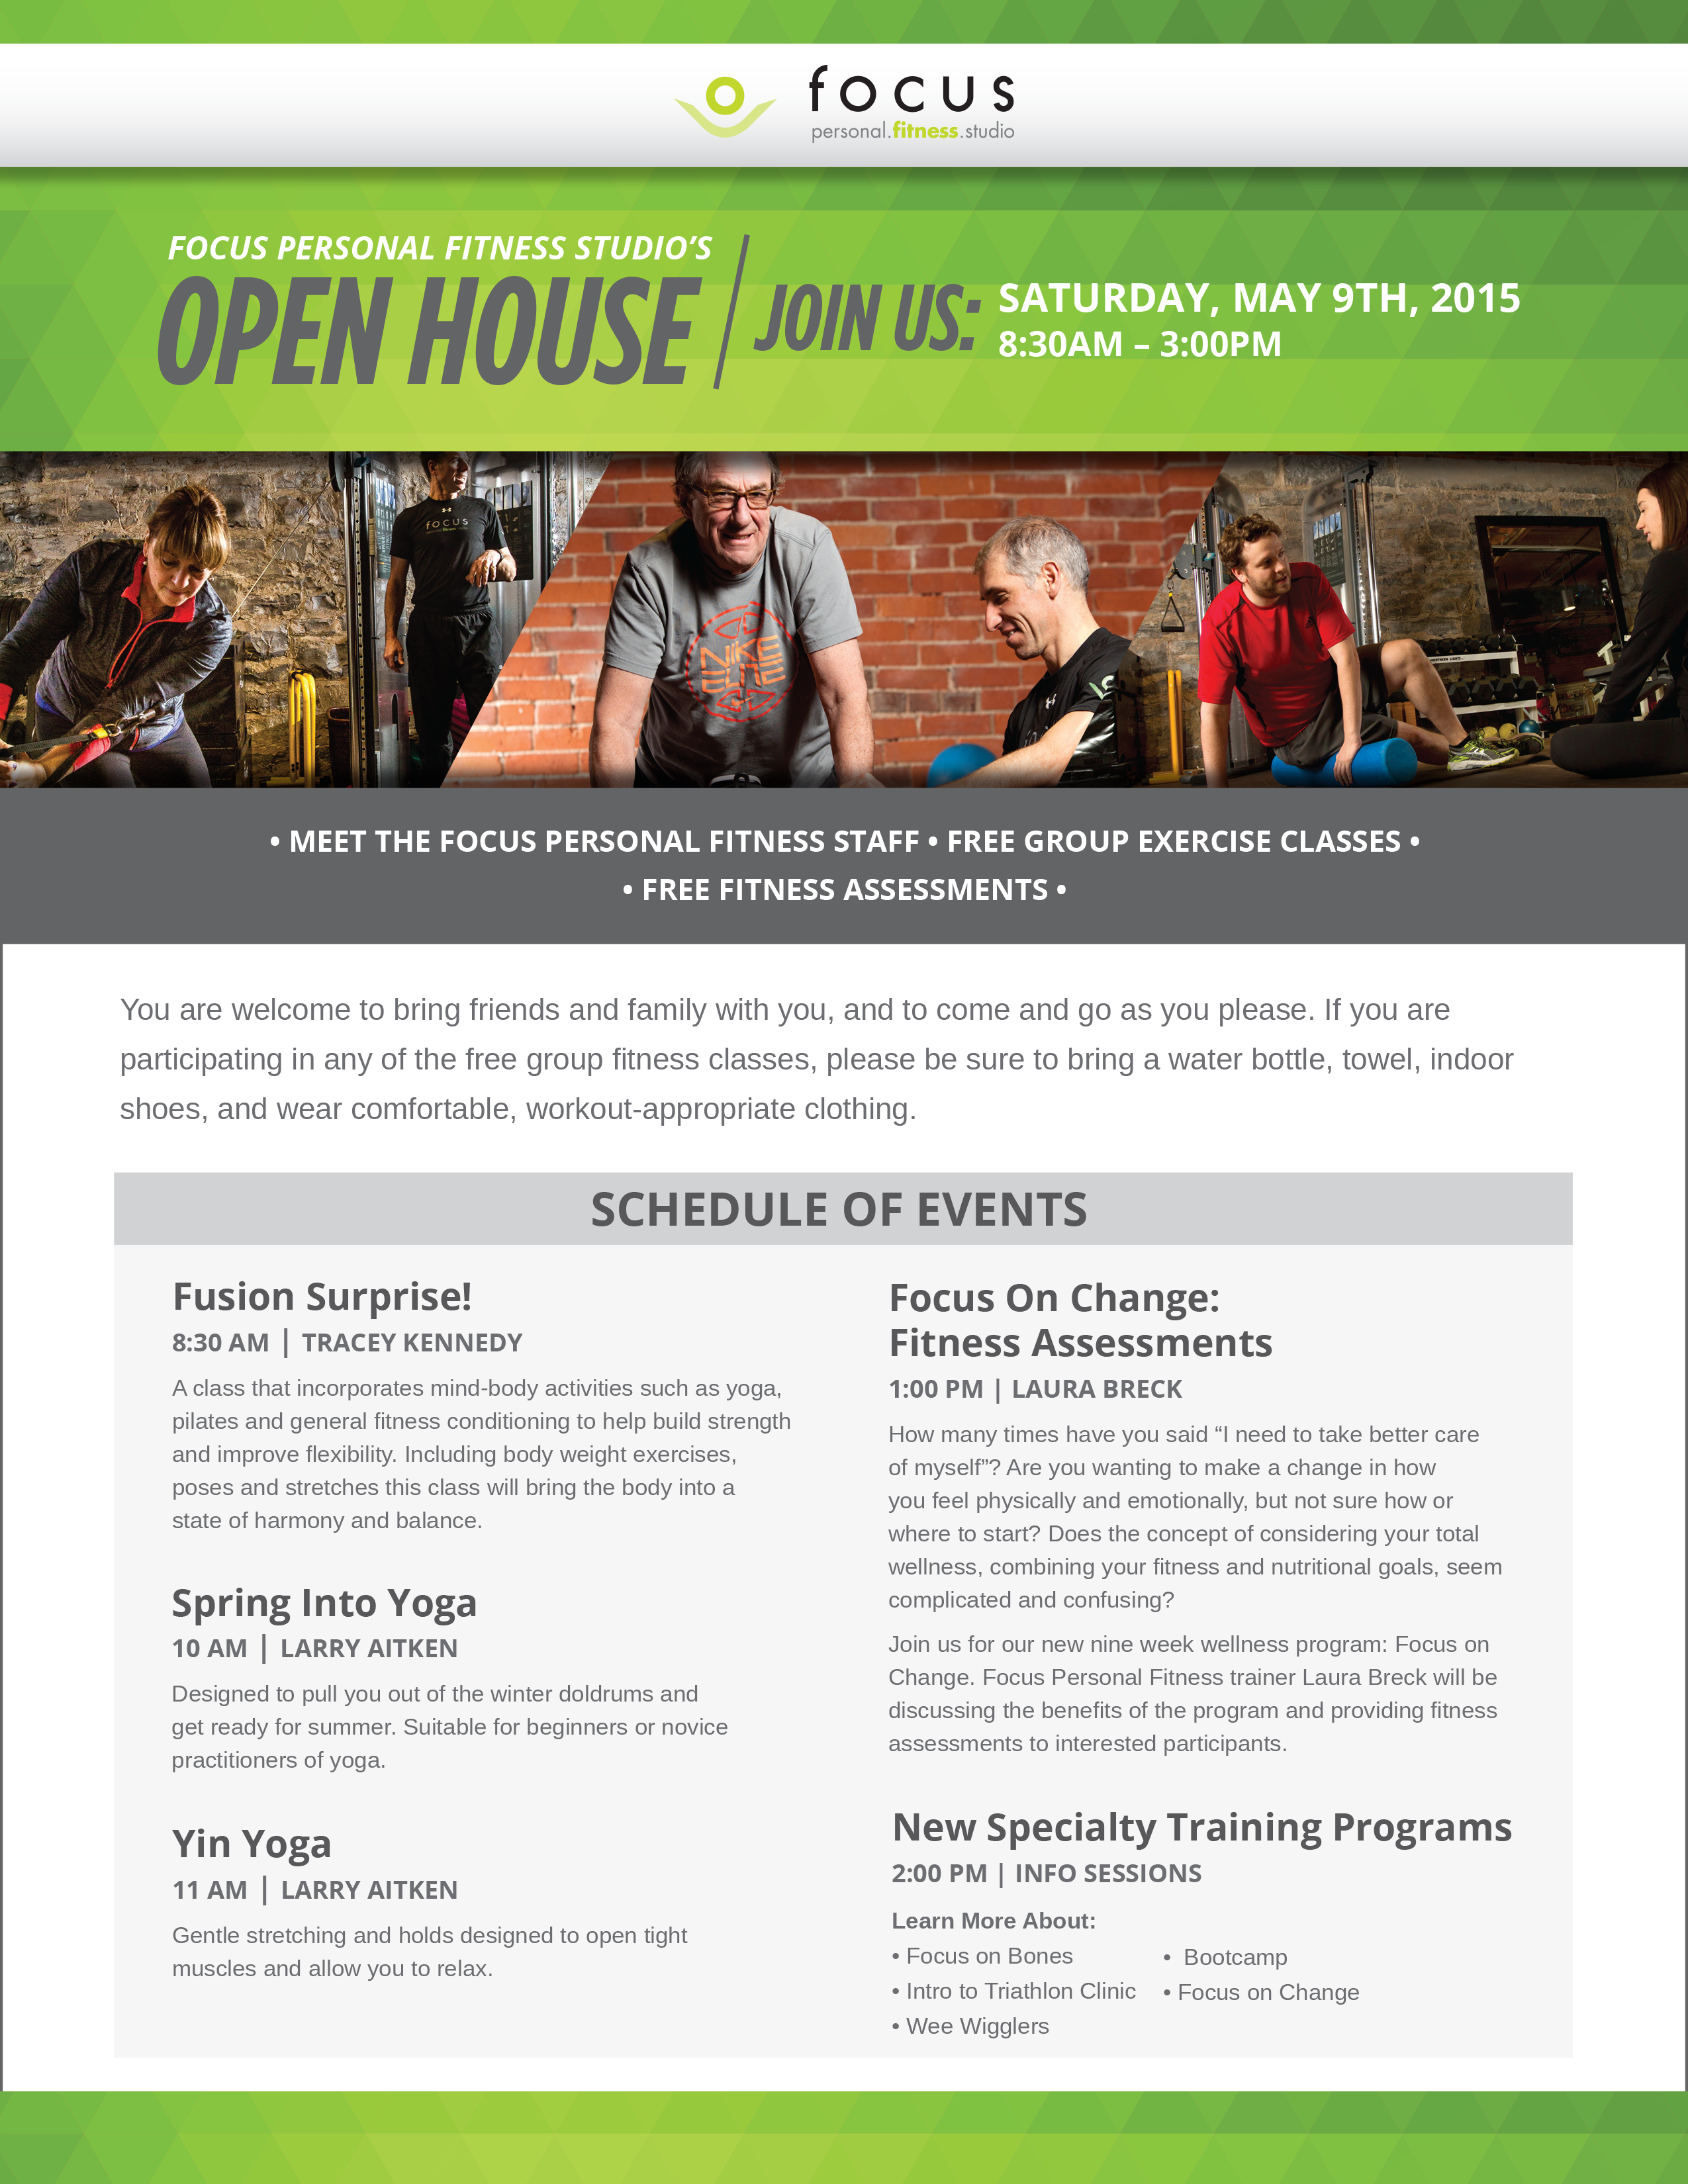 FF_May2015OpenHouse_Agenda_04.29.15